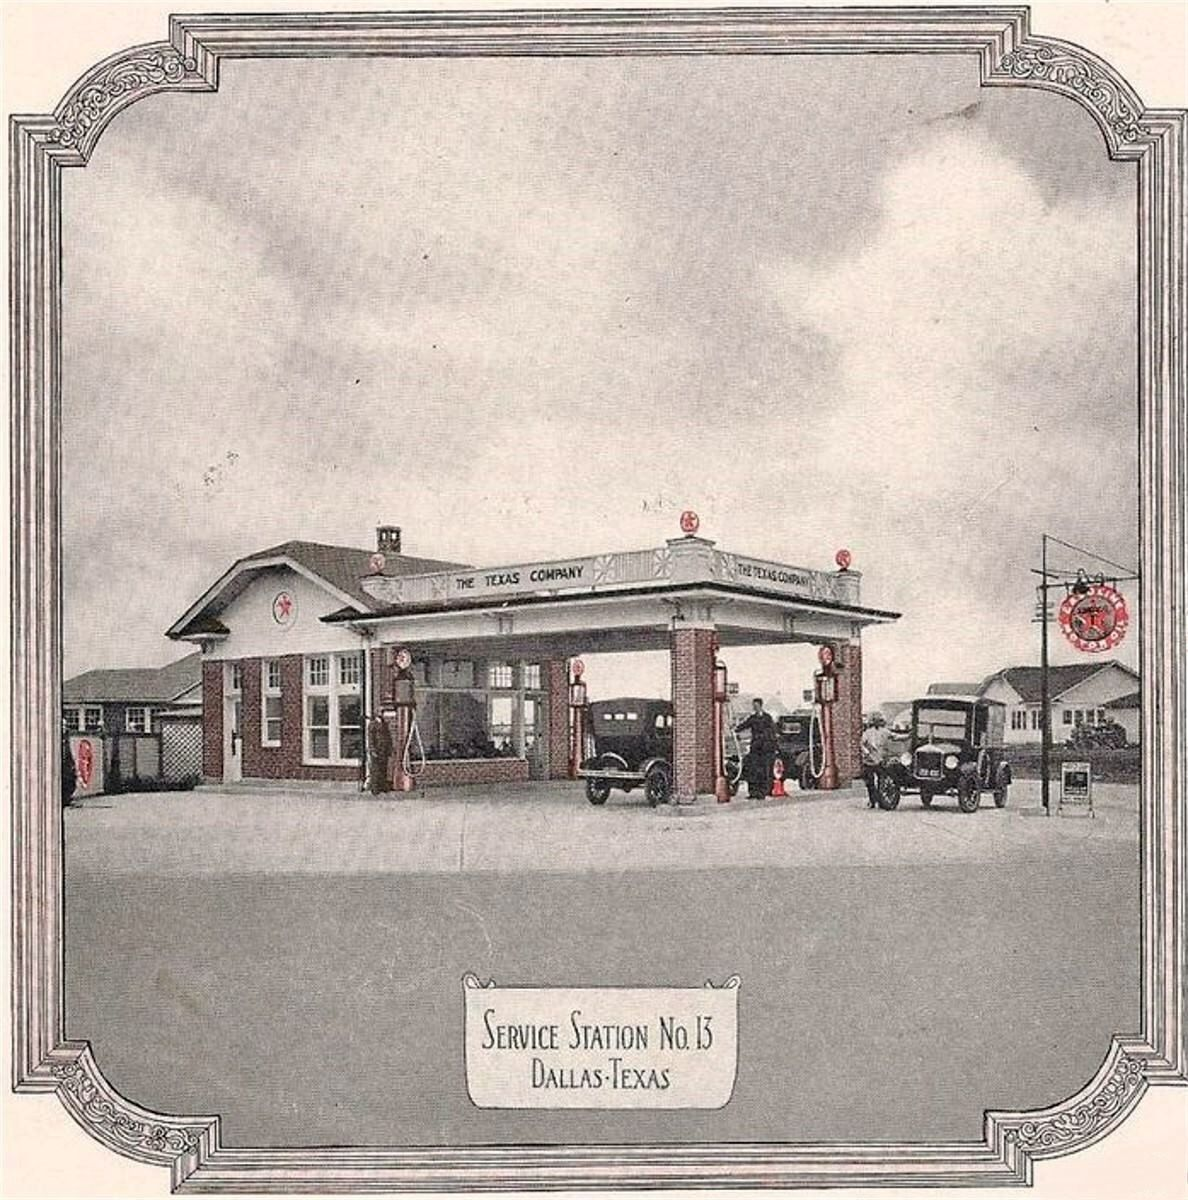 13 known as Texaco this service station